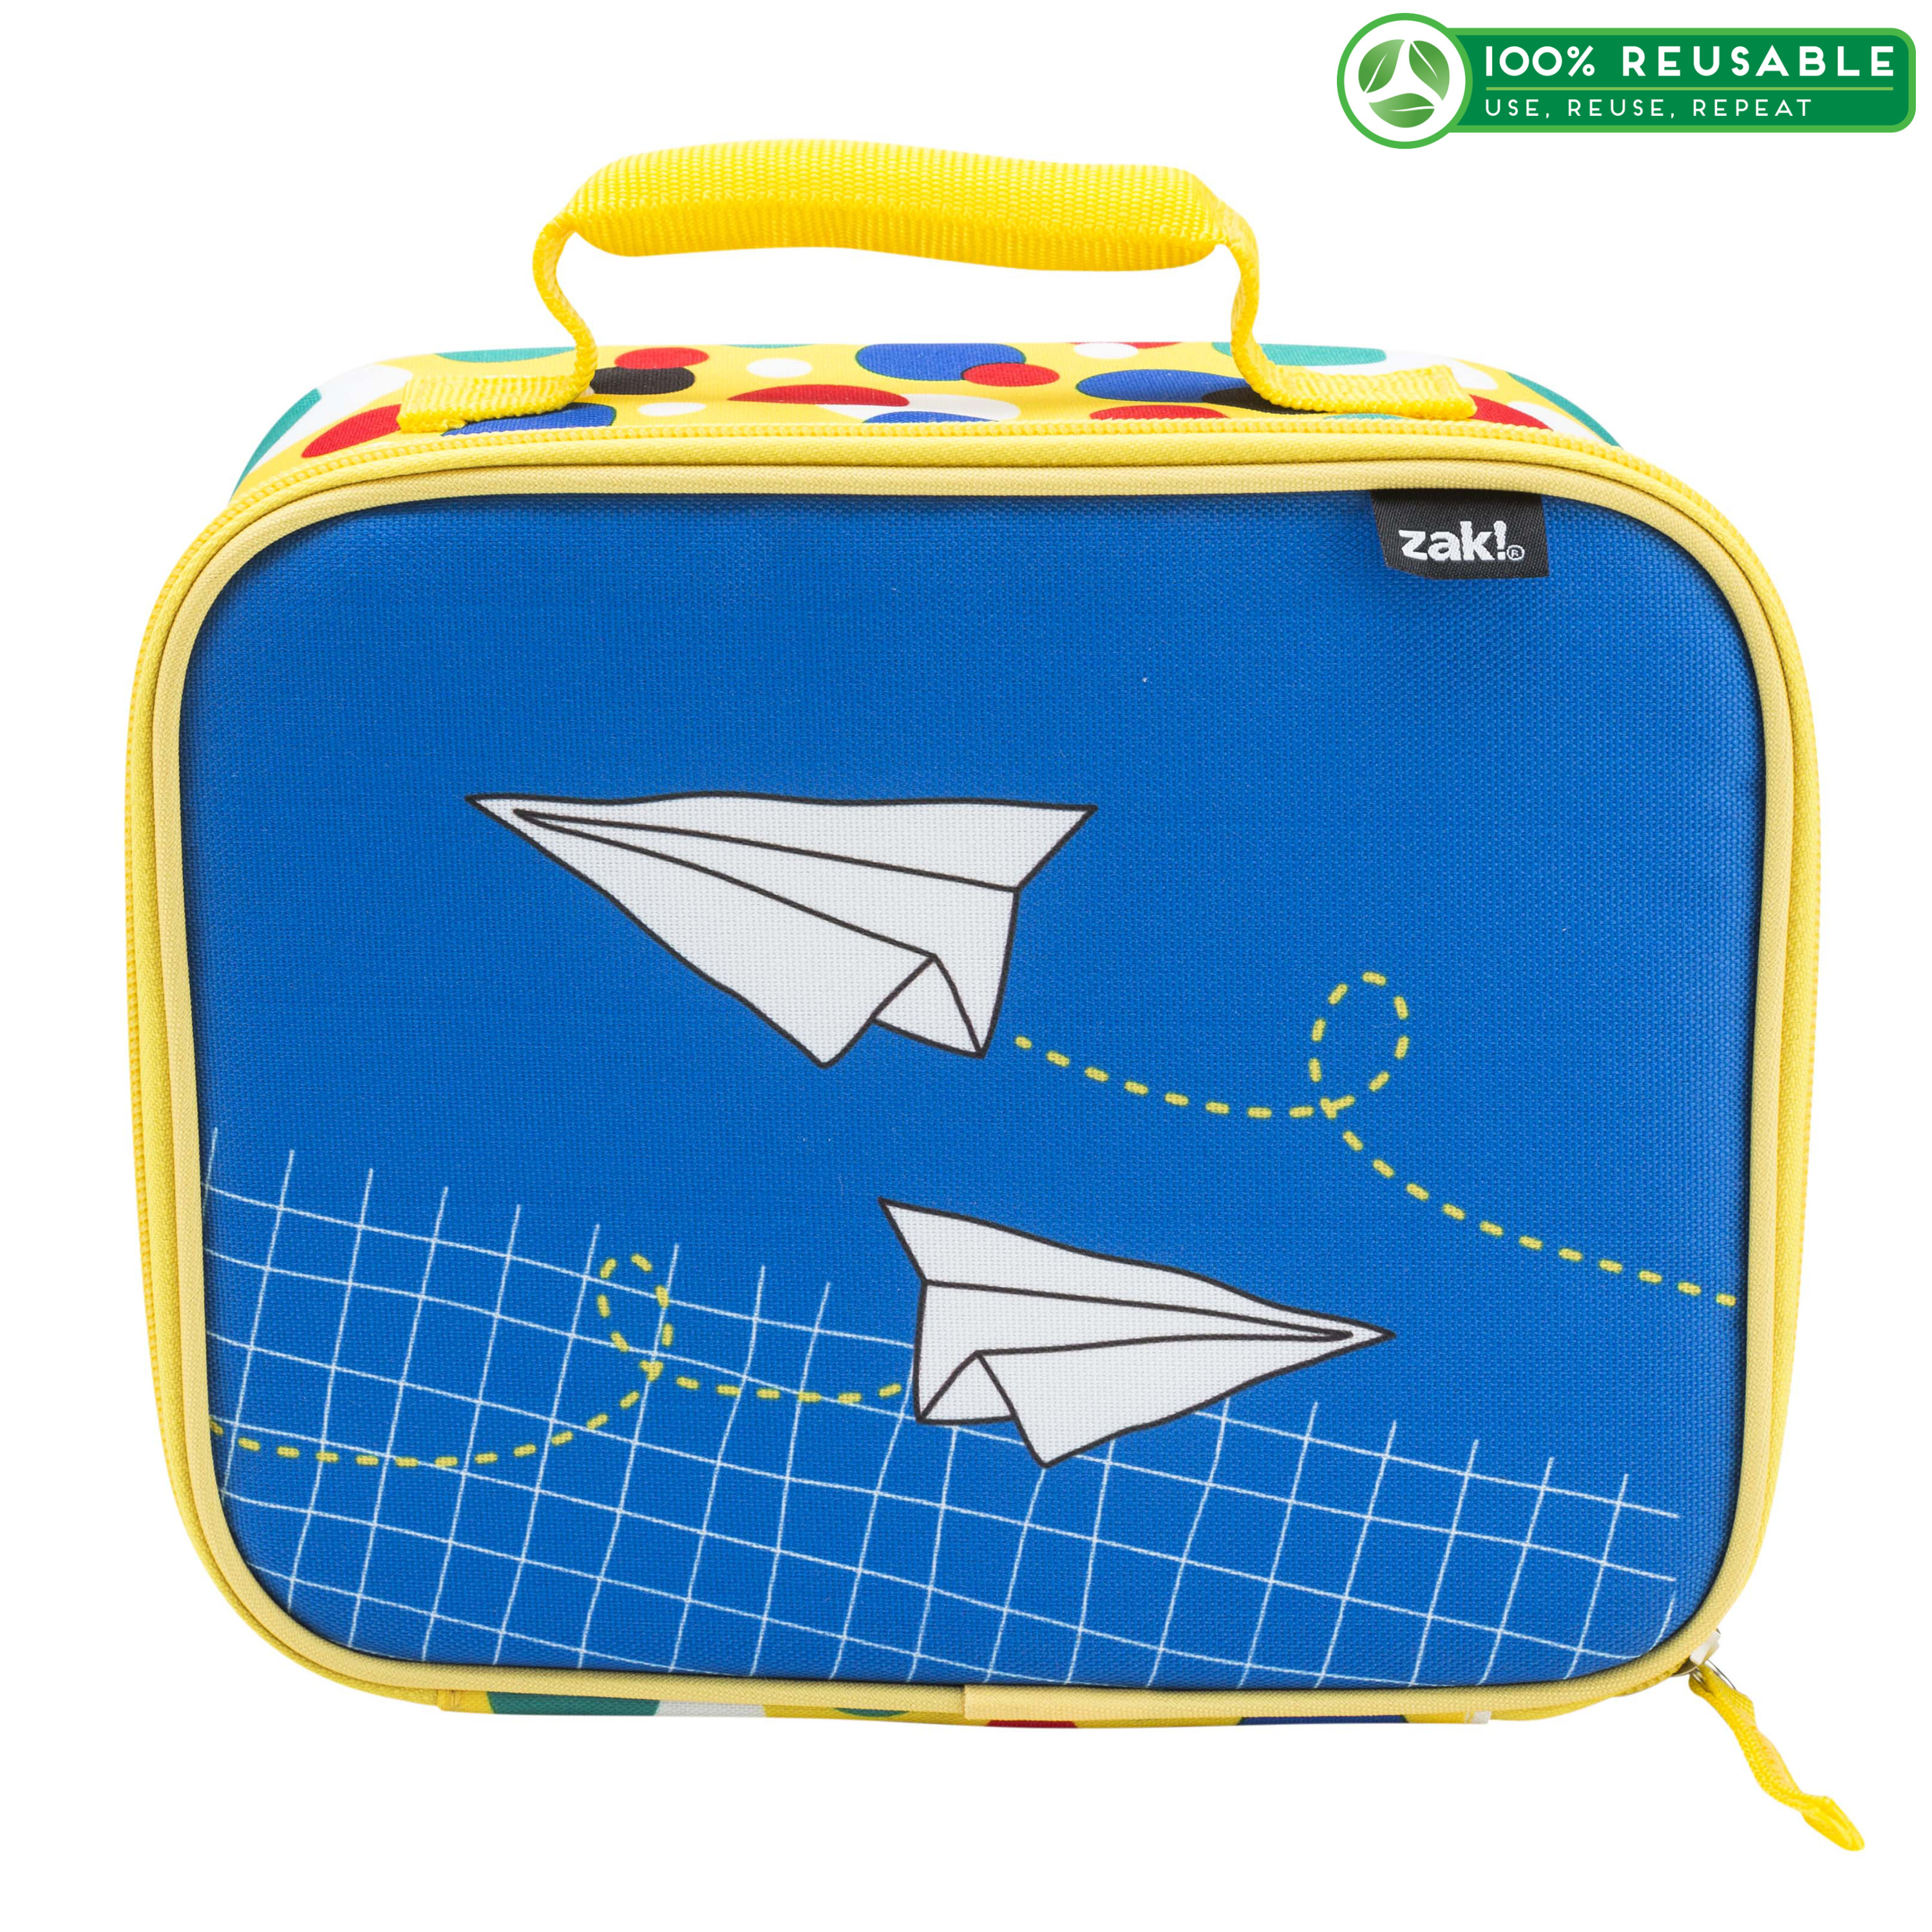 Grid Lock Insulated Reusable Lunch Bag, Planes slideshow image 1